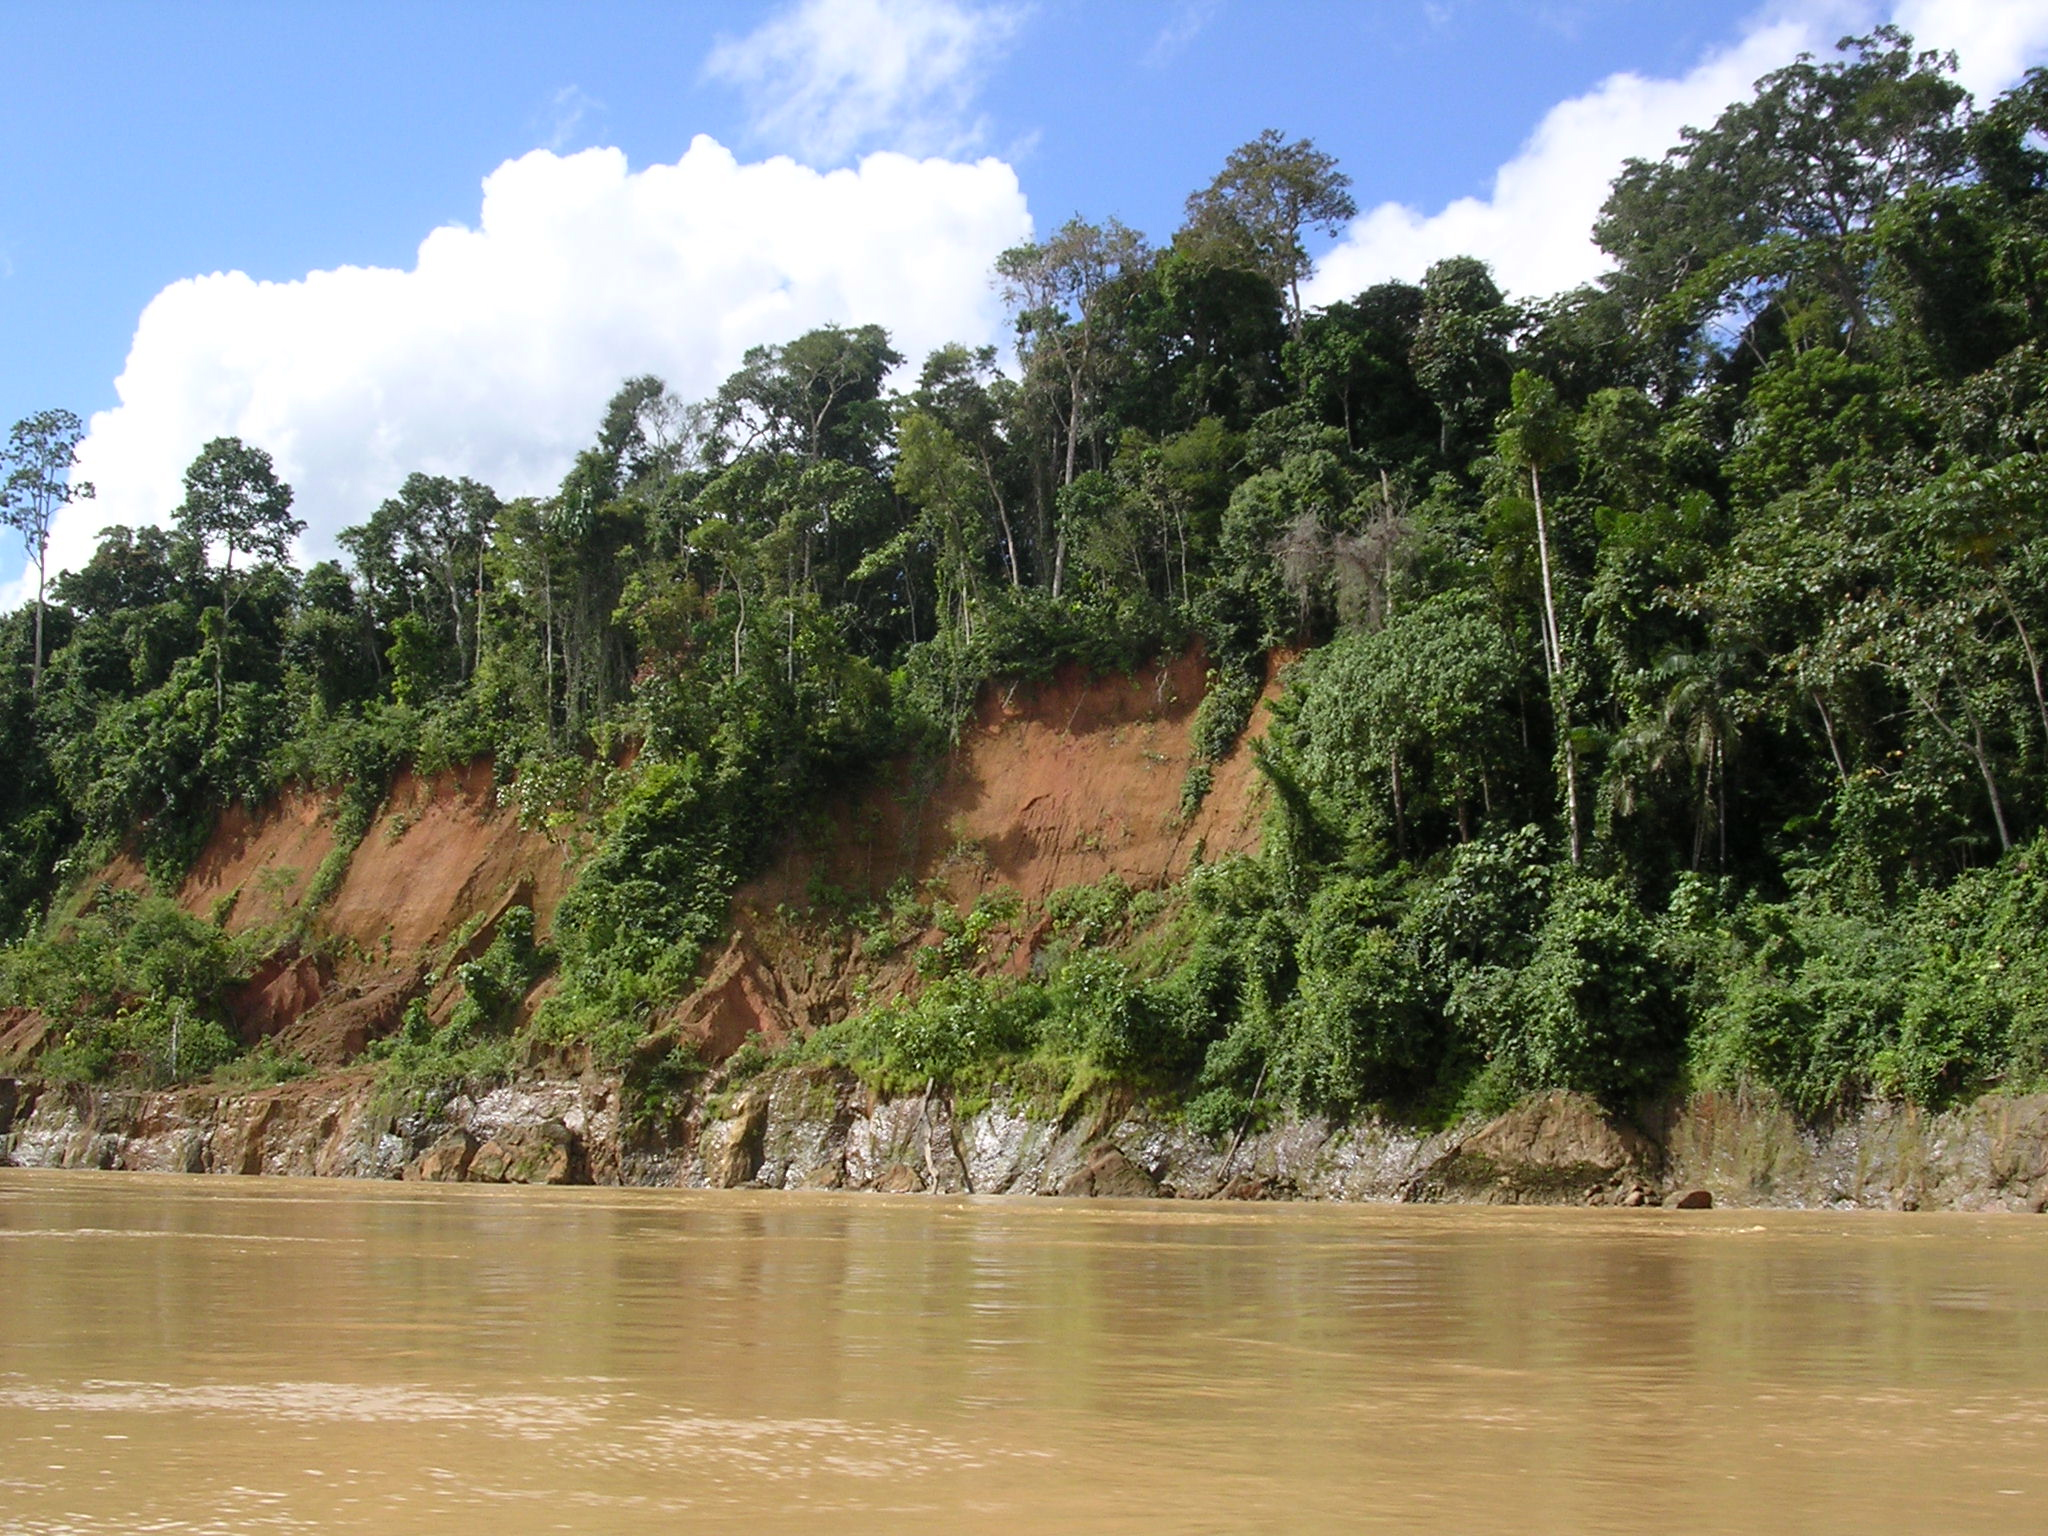 800-year-old farmers could teach us how to protect the Amazon